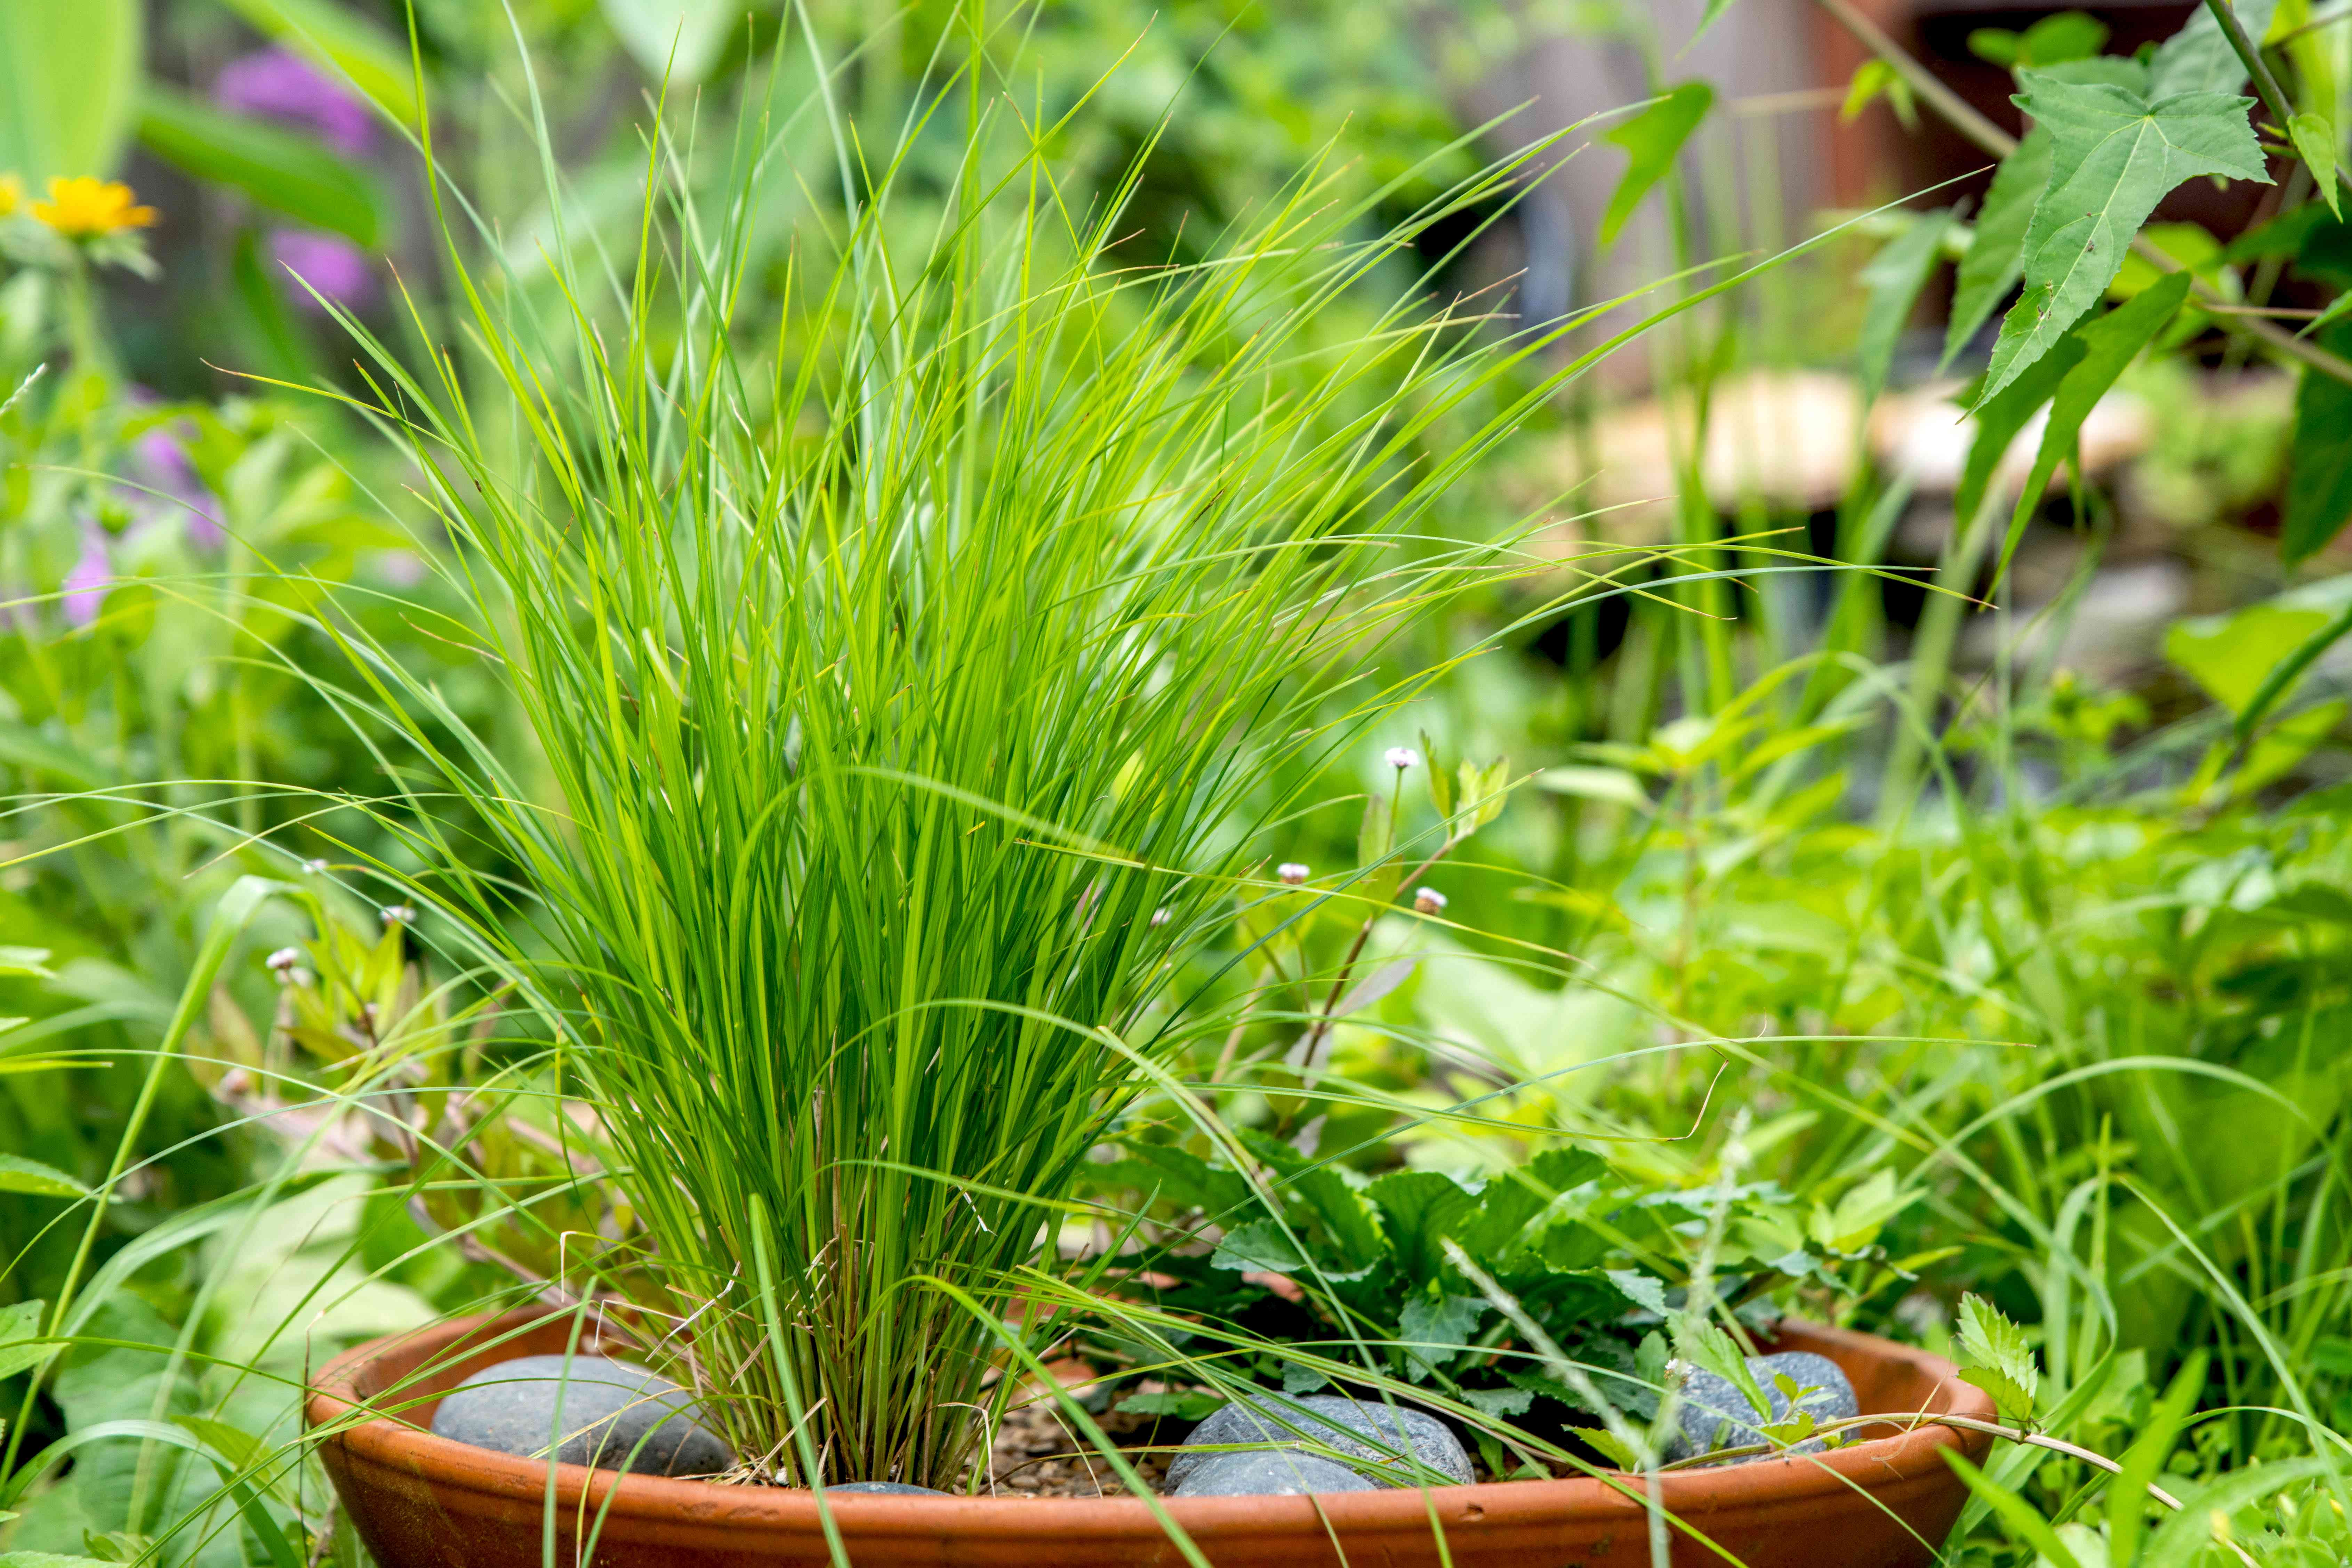 Tussock sedge plant with thin grass-like leaves clumped together in orange pot with gray pebbles